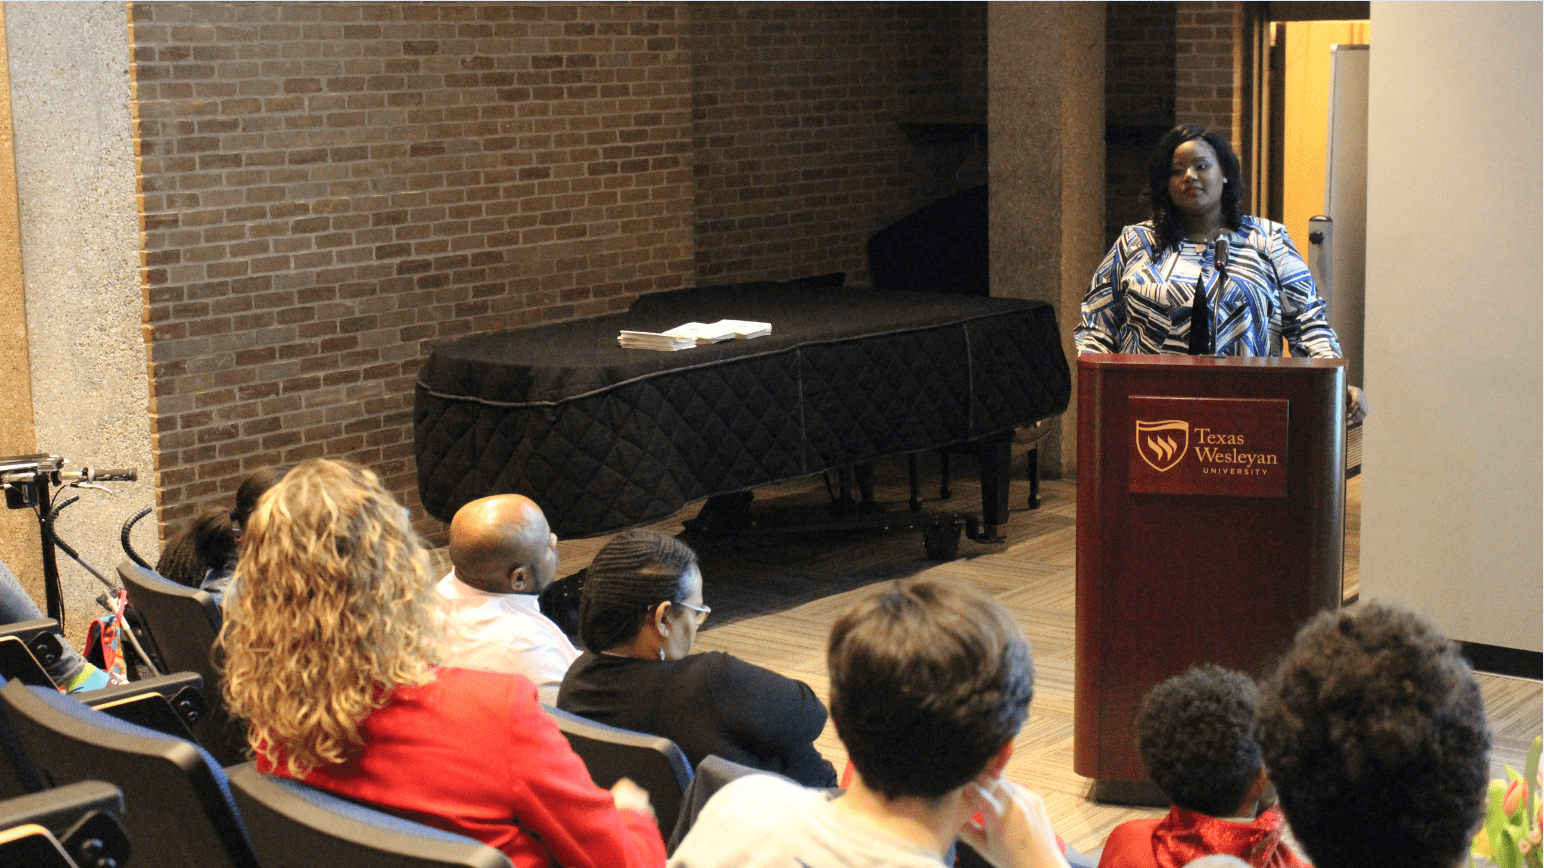 Jones speaks about empowering women at Wesleyan